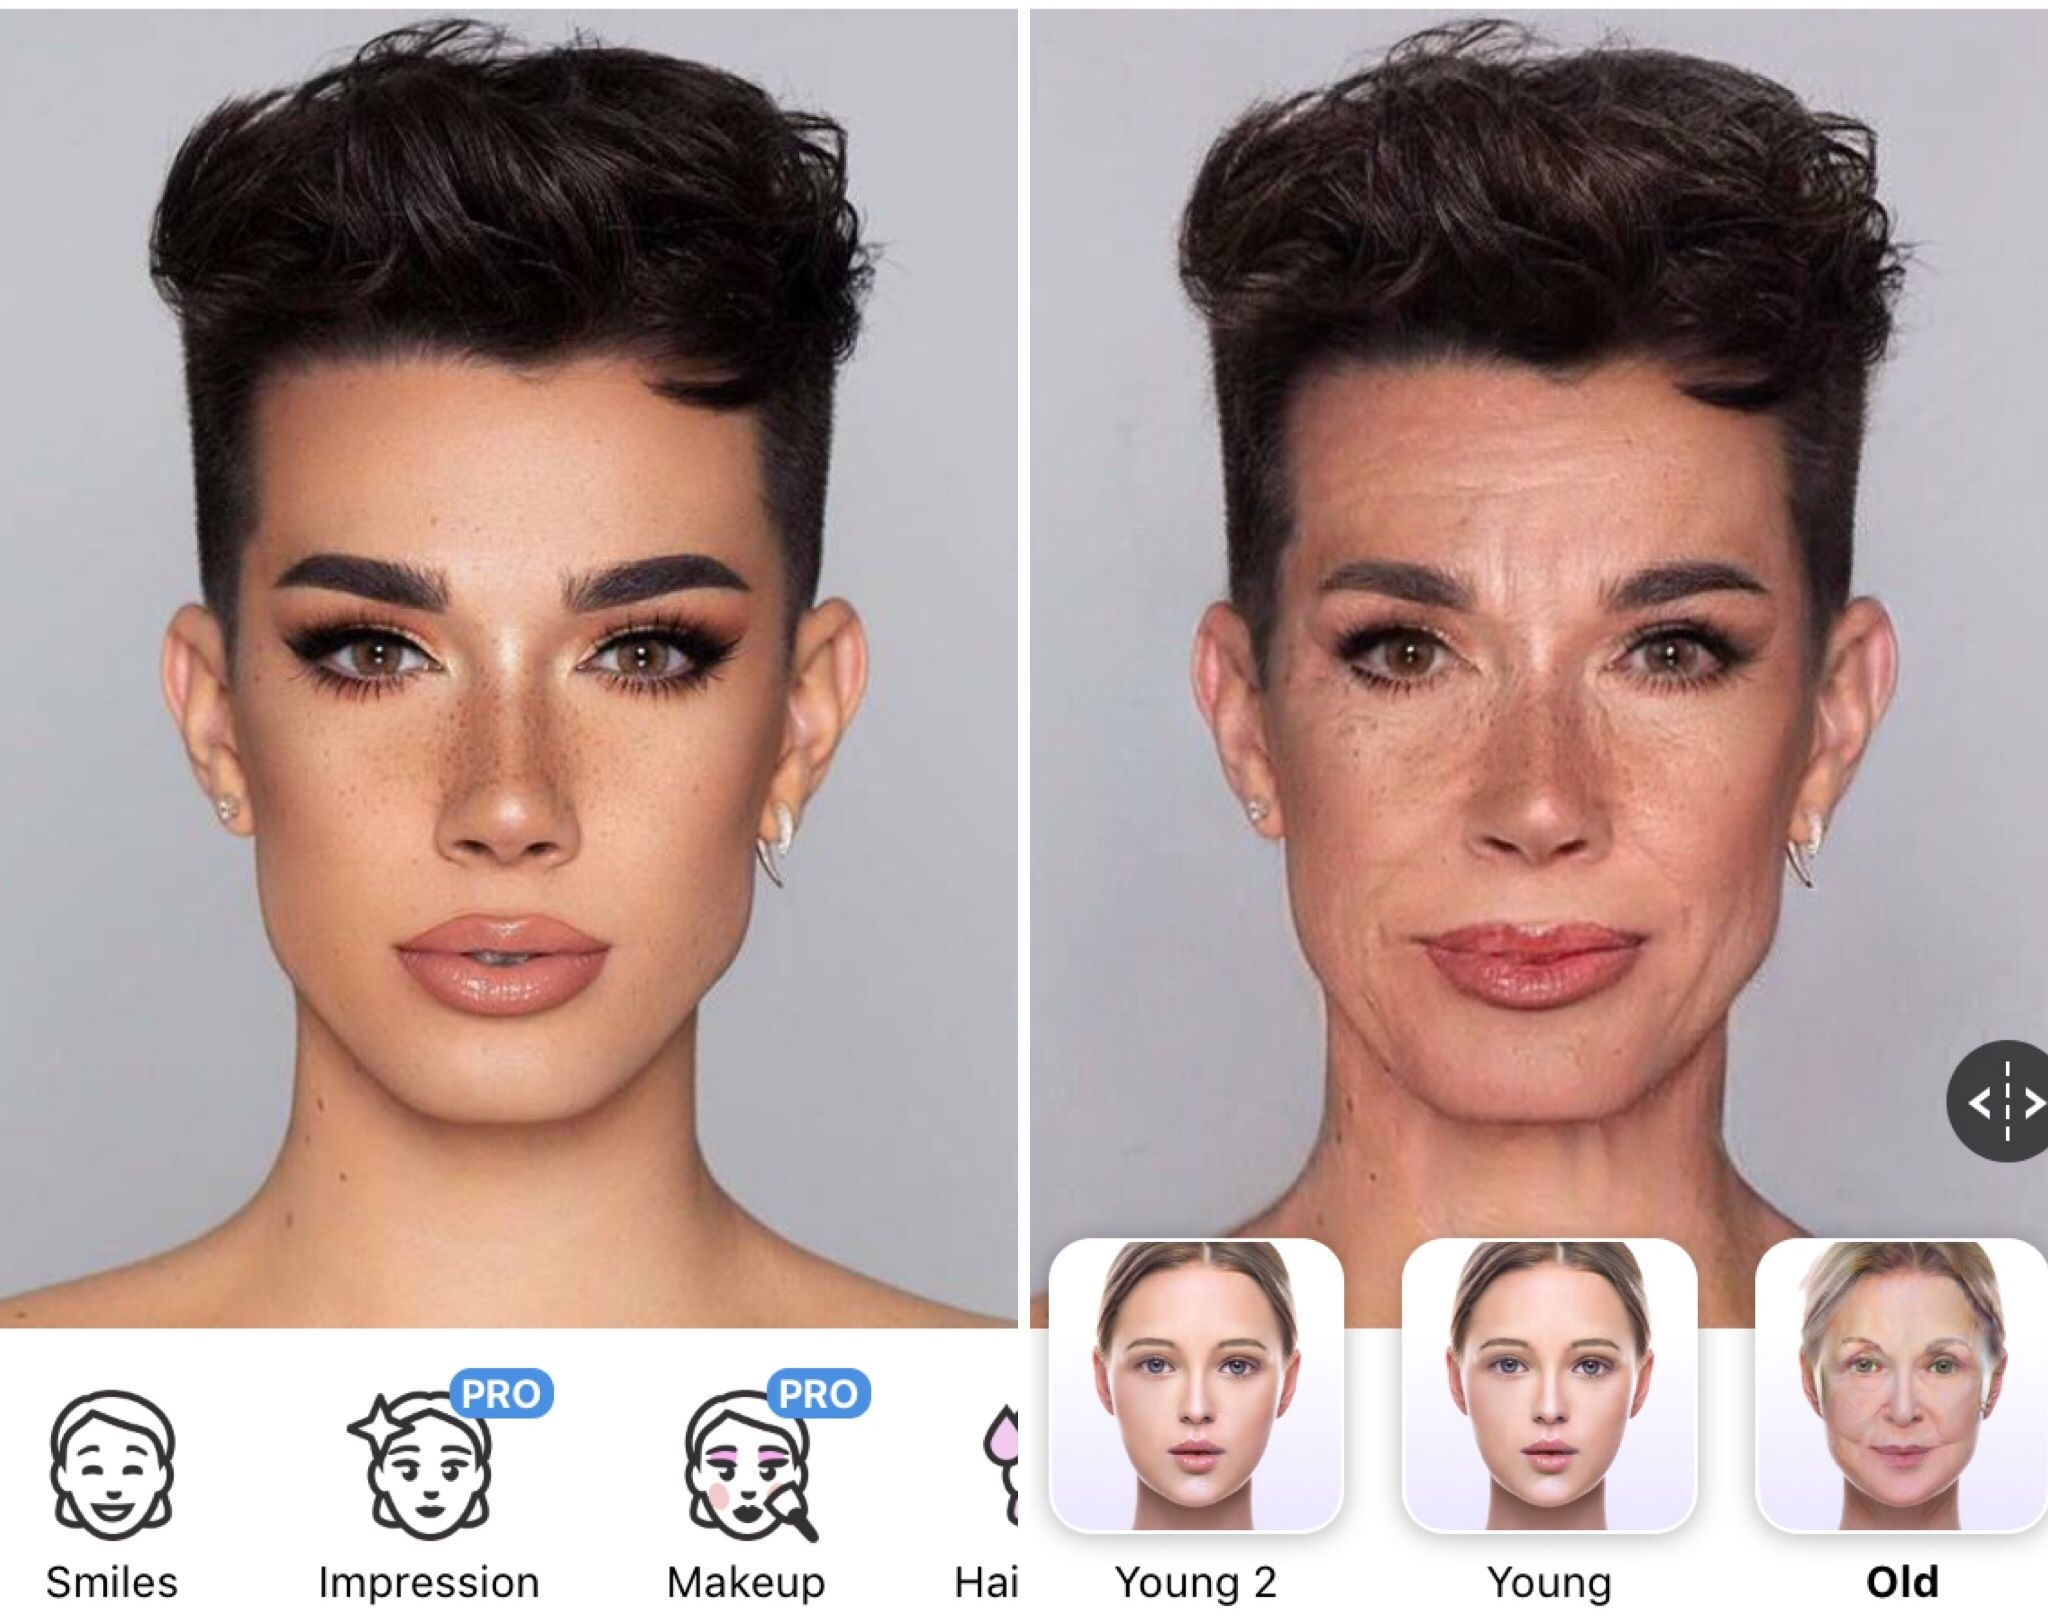 Image may contain: ageing filter, face app, app, older, funniest, best, example, filter, younger, celebrity, old man, old woman, social media, Instagram, Snapchat, Facebook, Twitter, age changing app, make yourself look older, free, ageing, challenge, James Charles, Haircut, Hair, Face, Person, Human